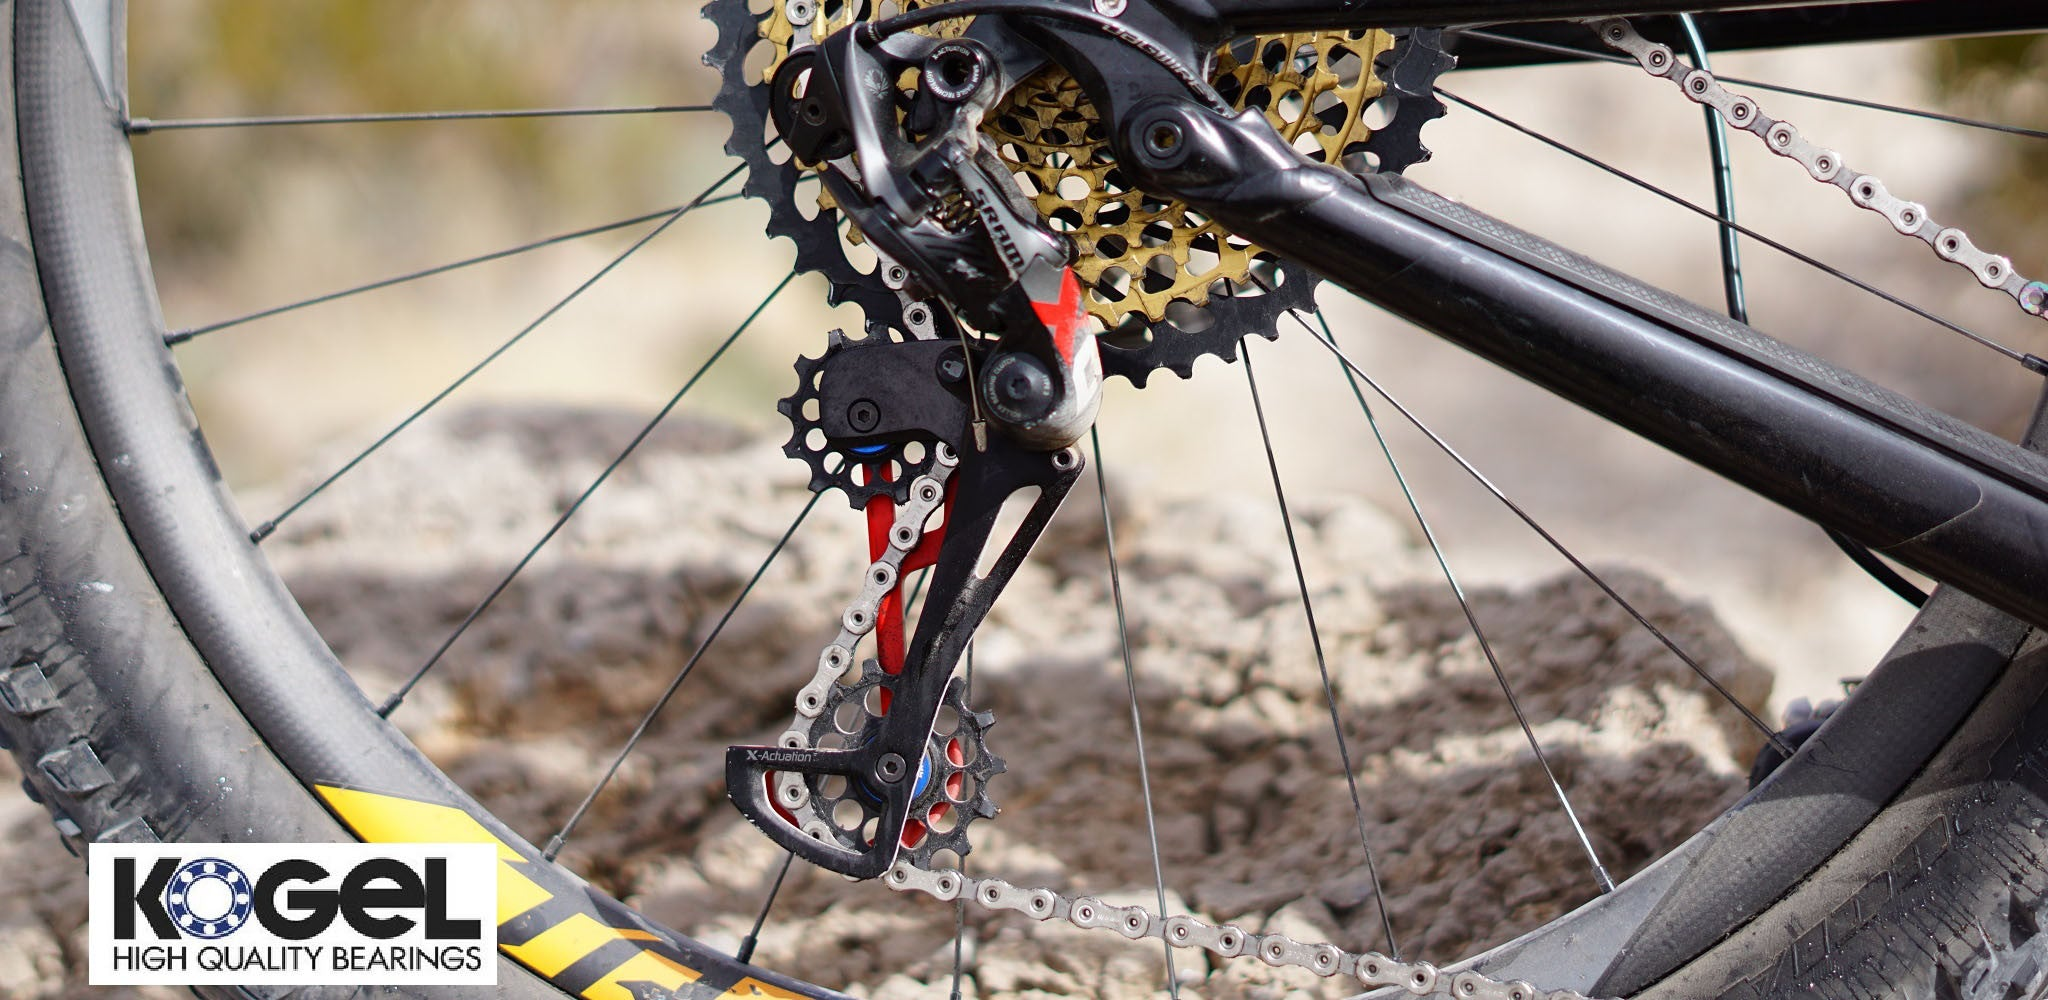 Do oversized derailleur pulleys really help? Part 1